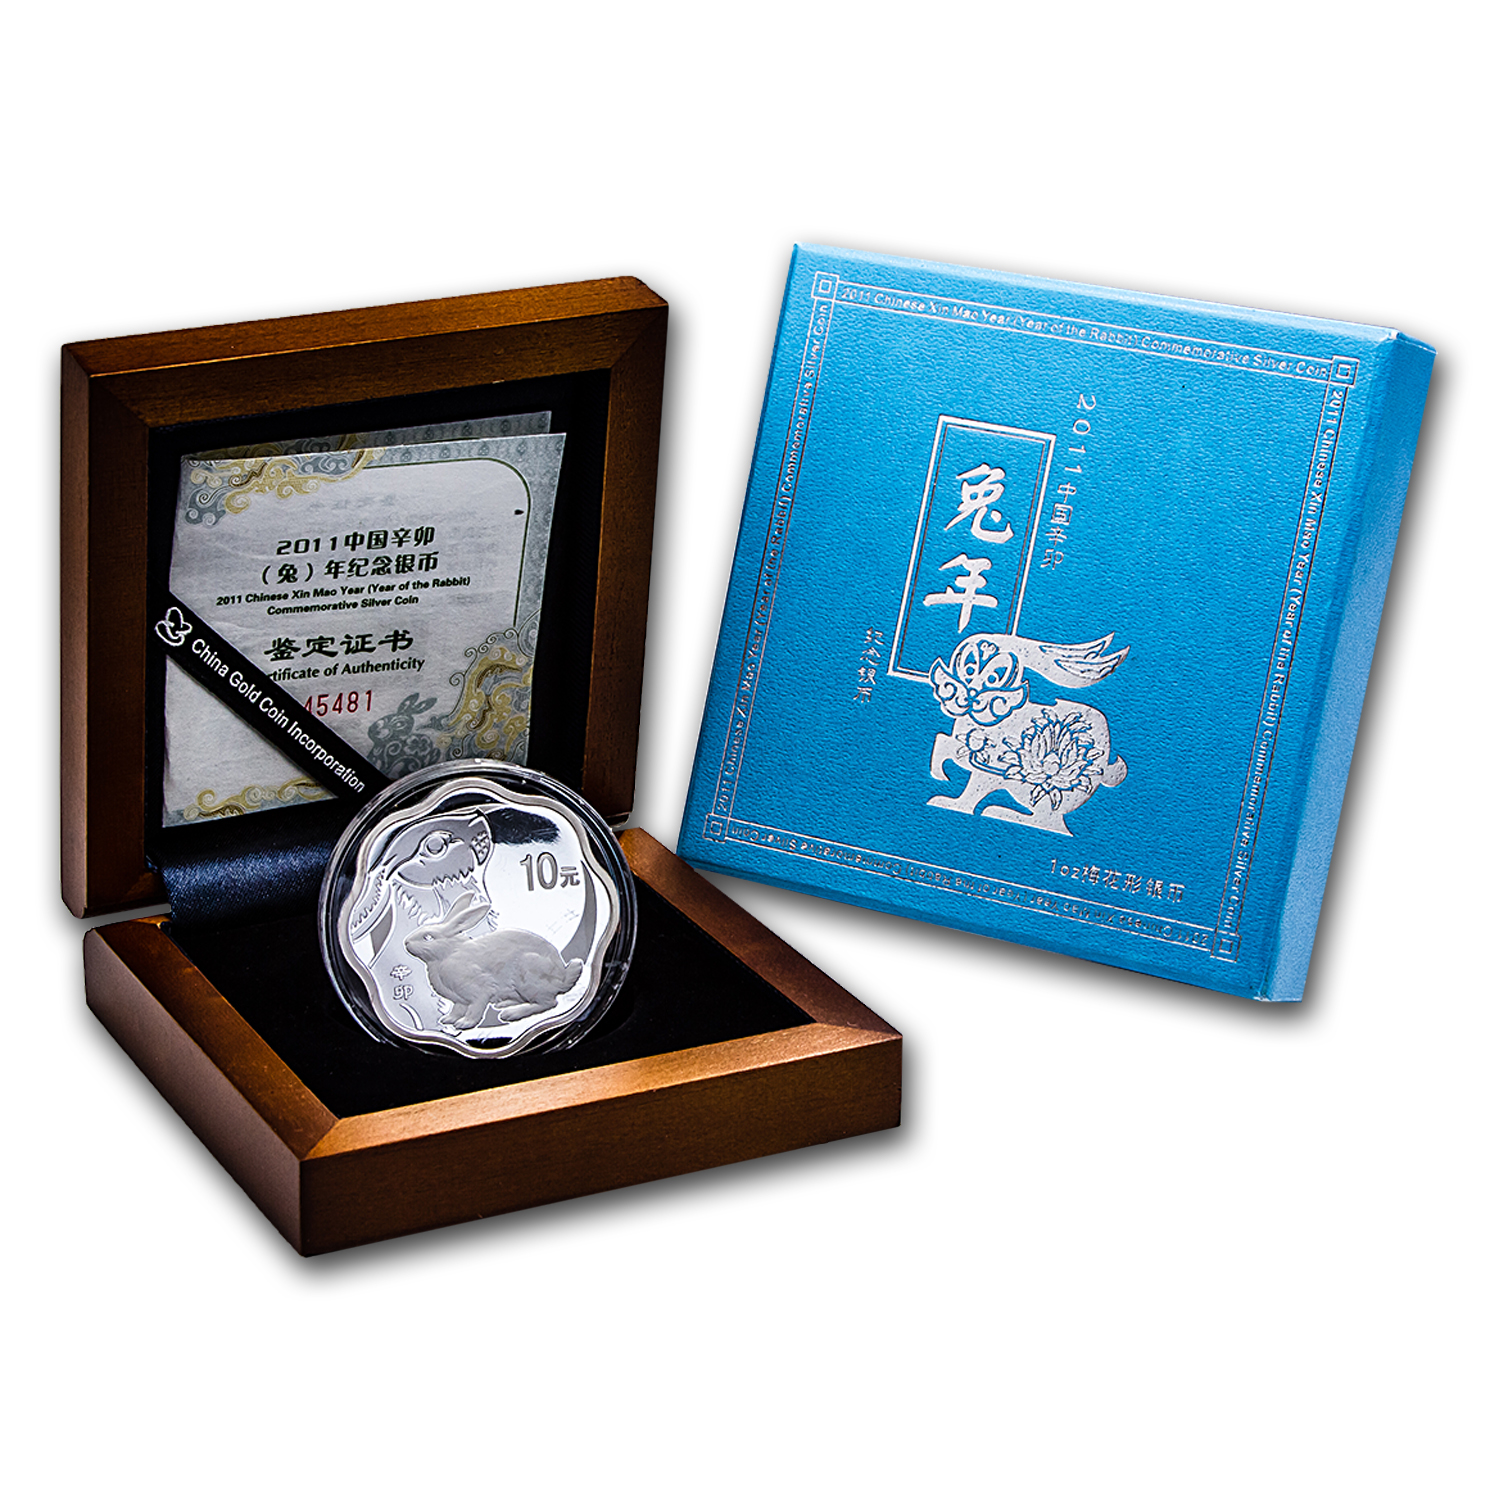 2011 Year of the Rabbit - 1 oz Silver - Flower Coin (w/Box & CoA)